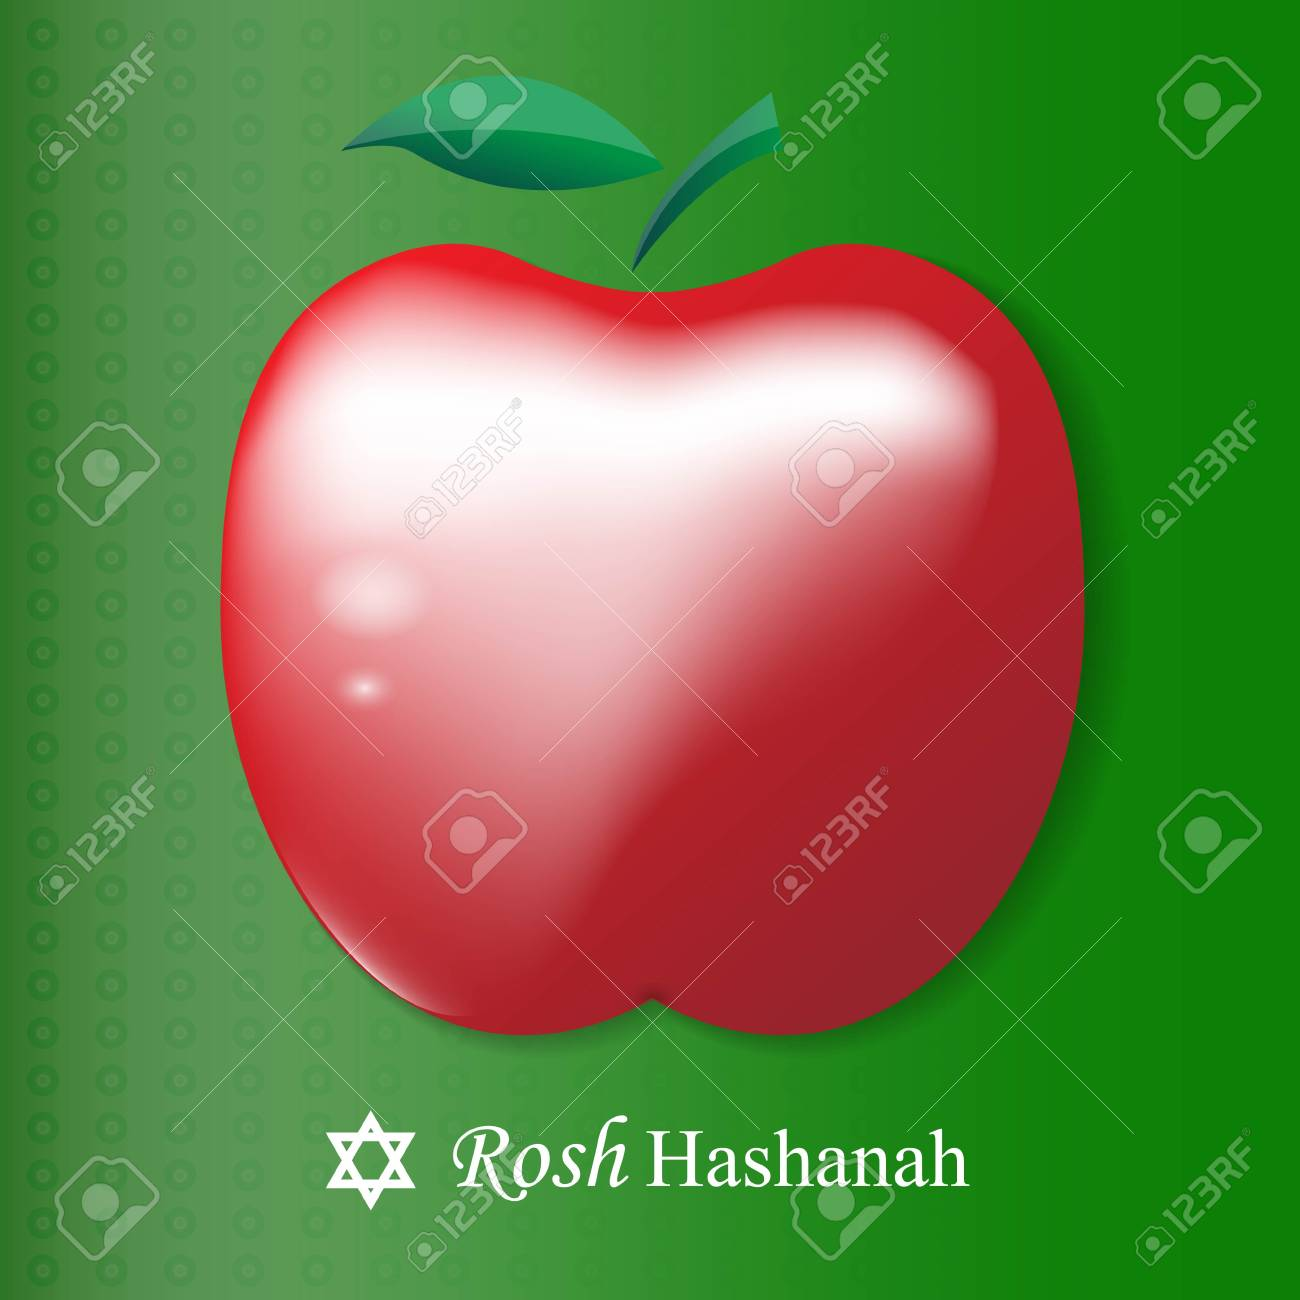 Greeting Card Design For Jewish New Year Rosh Hashanah Red